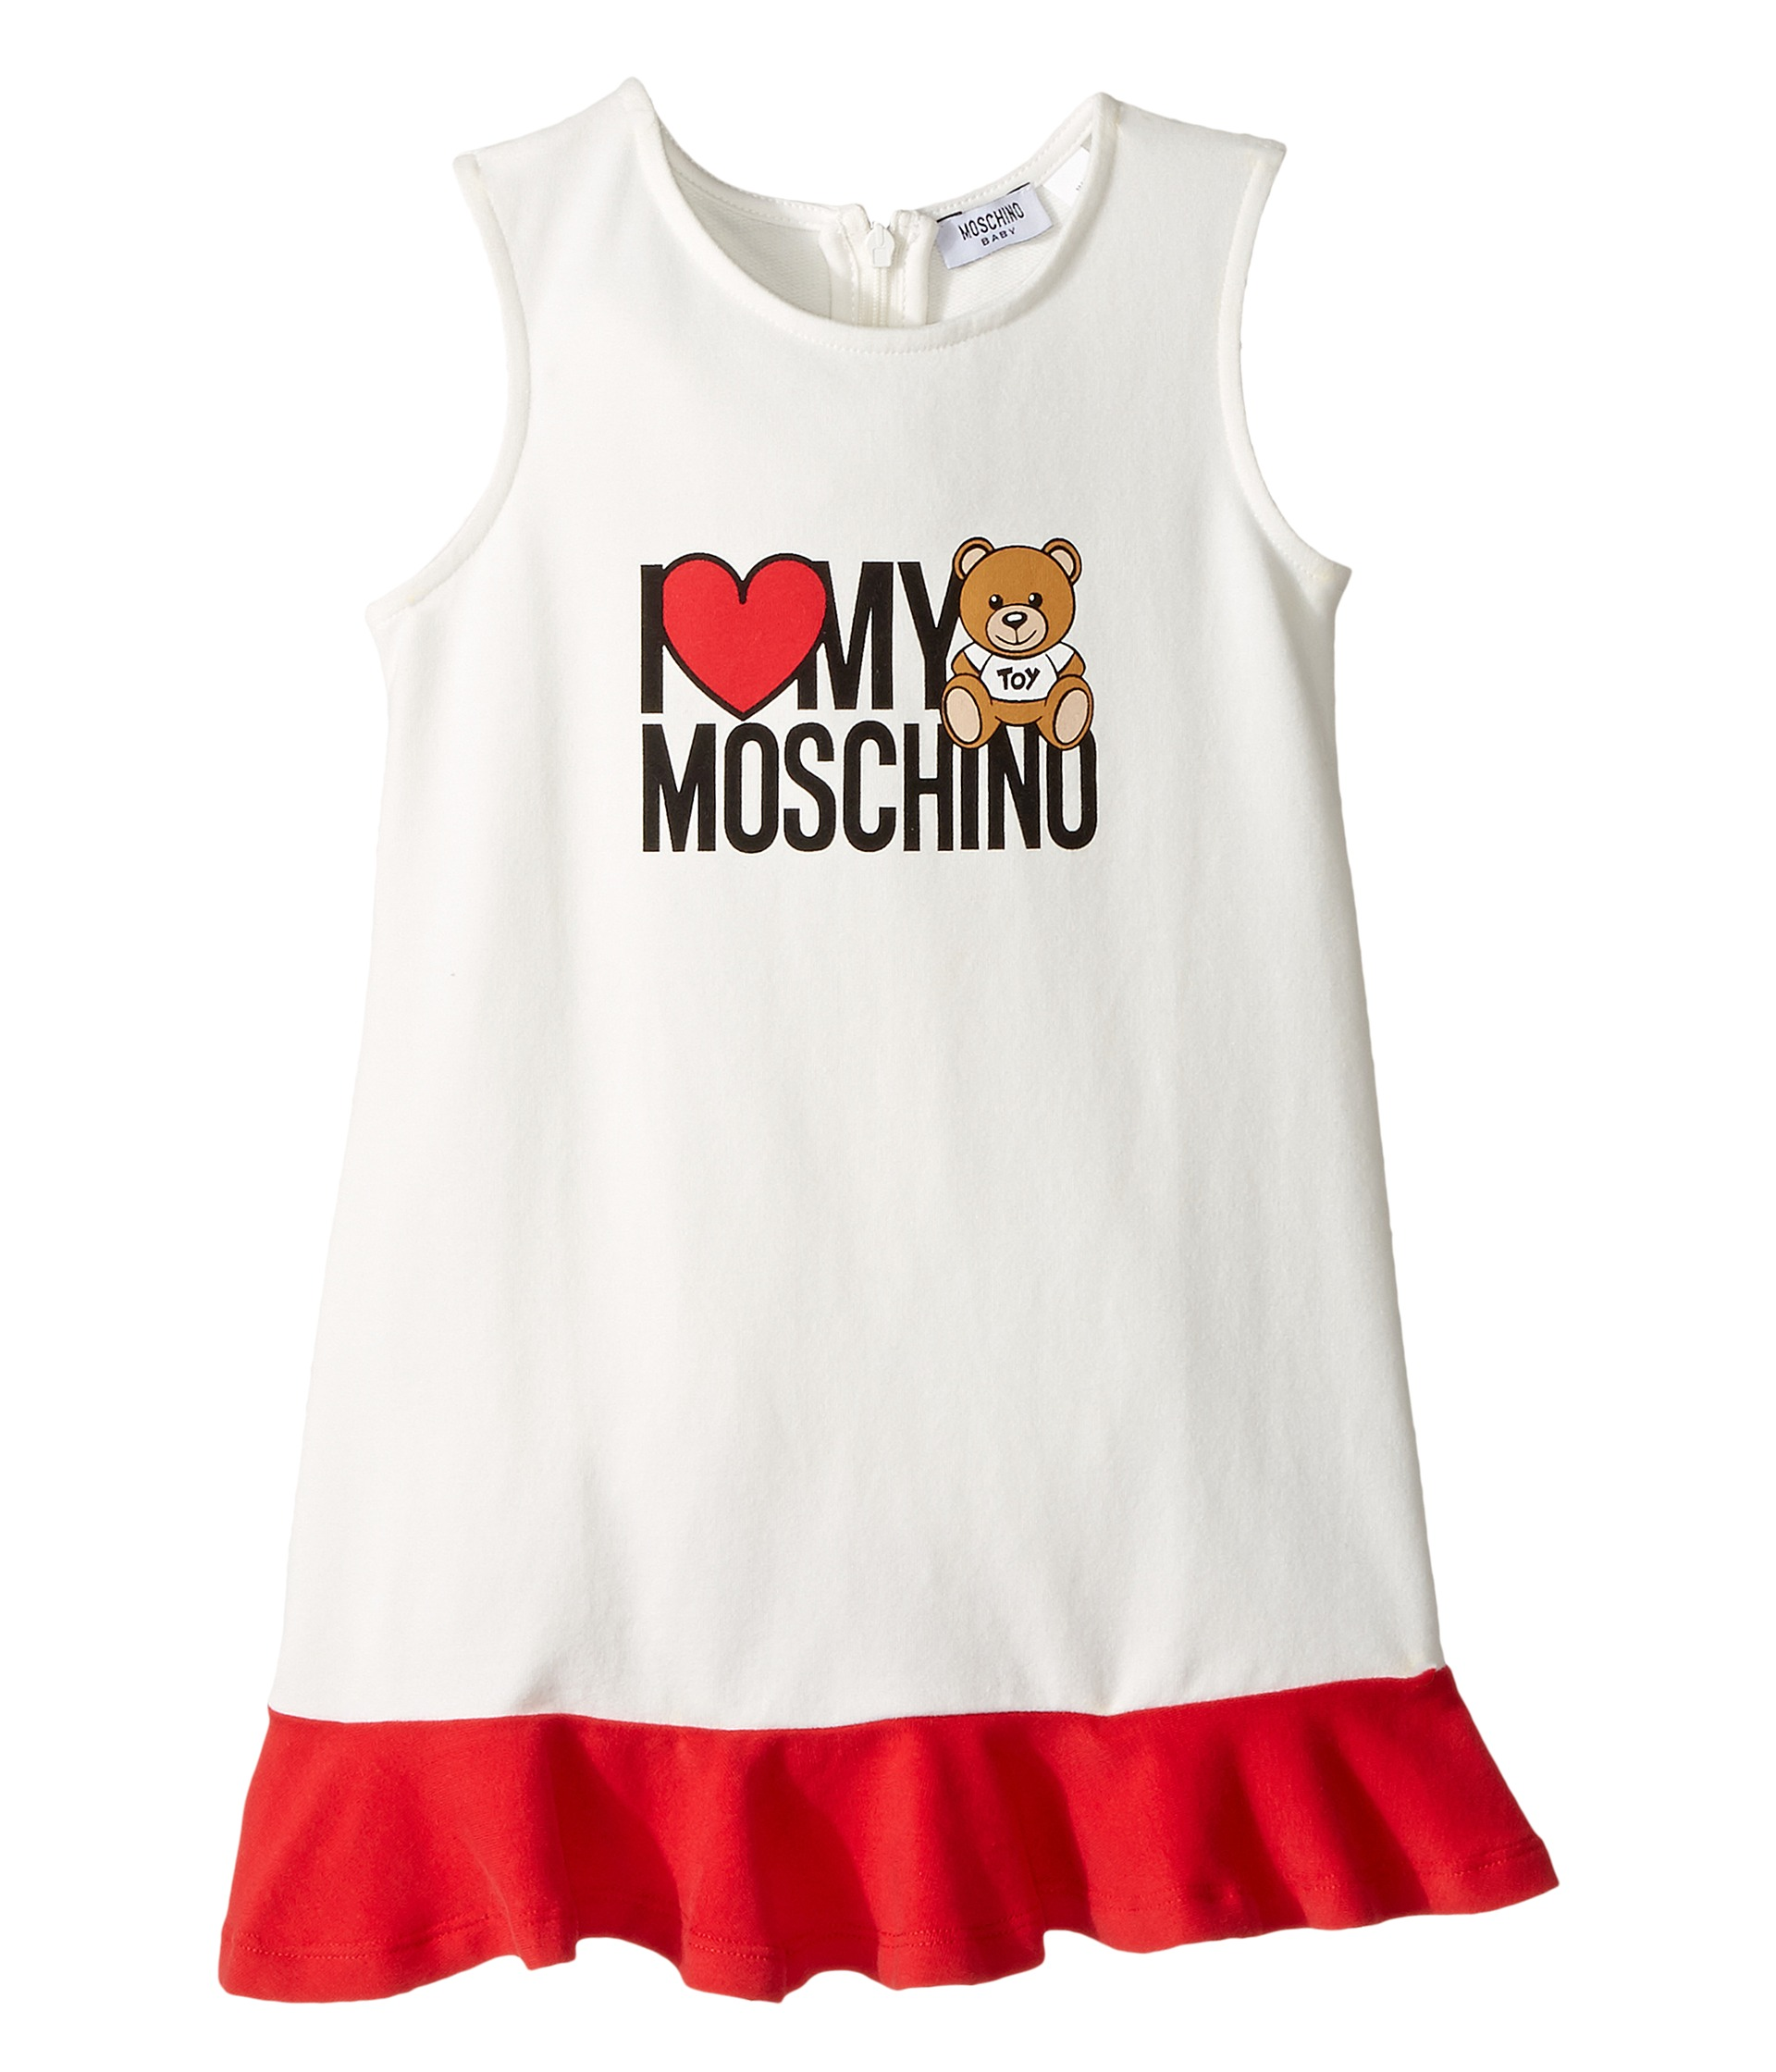 moschino kids 39 i love my moschino 39 teddy bear sleeveless dress infant toddler at. Black Bedroom Furniture Sets. Home Design Ideas